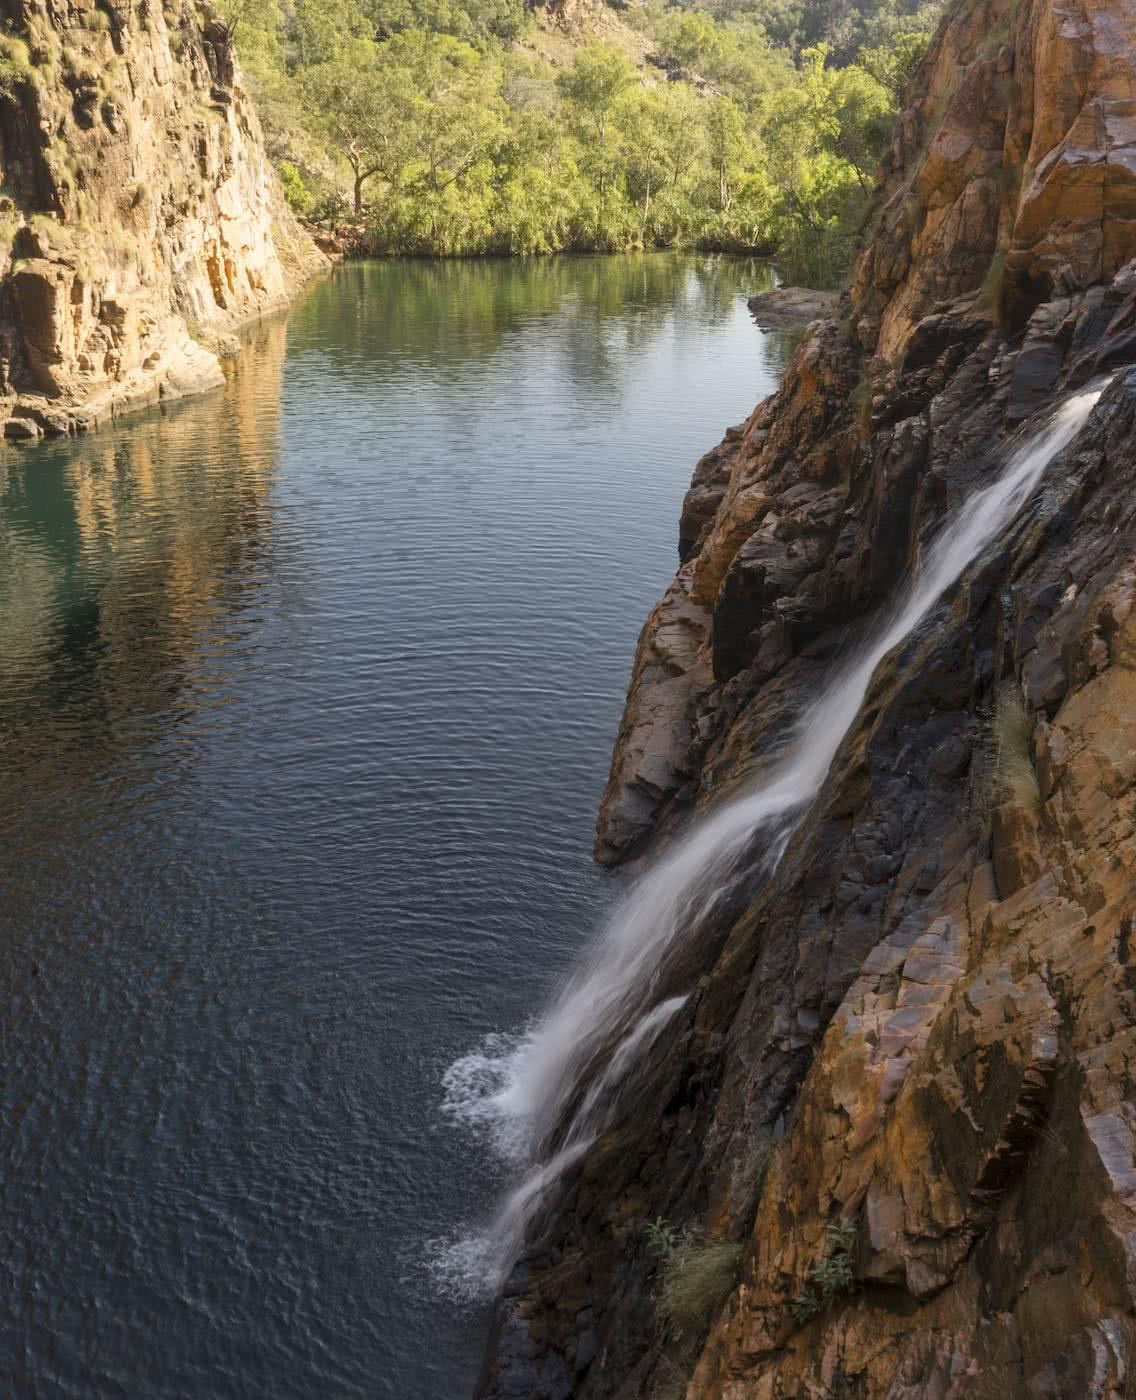 Lewis Burnett, Hunting for Paradise, Kakadu National Park, Photo Essay, waterfall, maguk, barramundi gorge